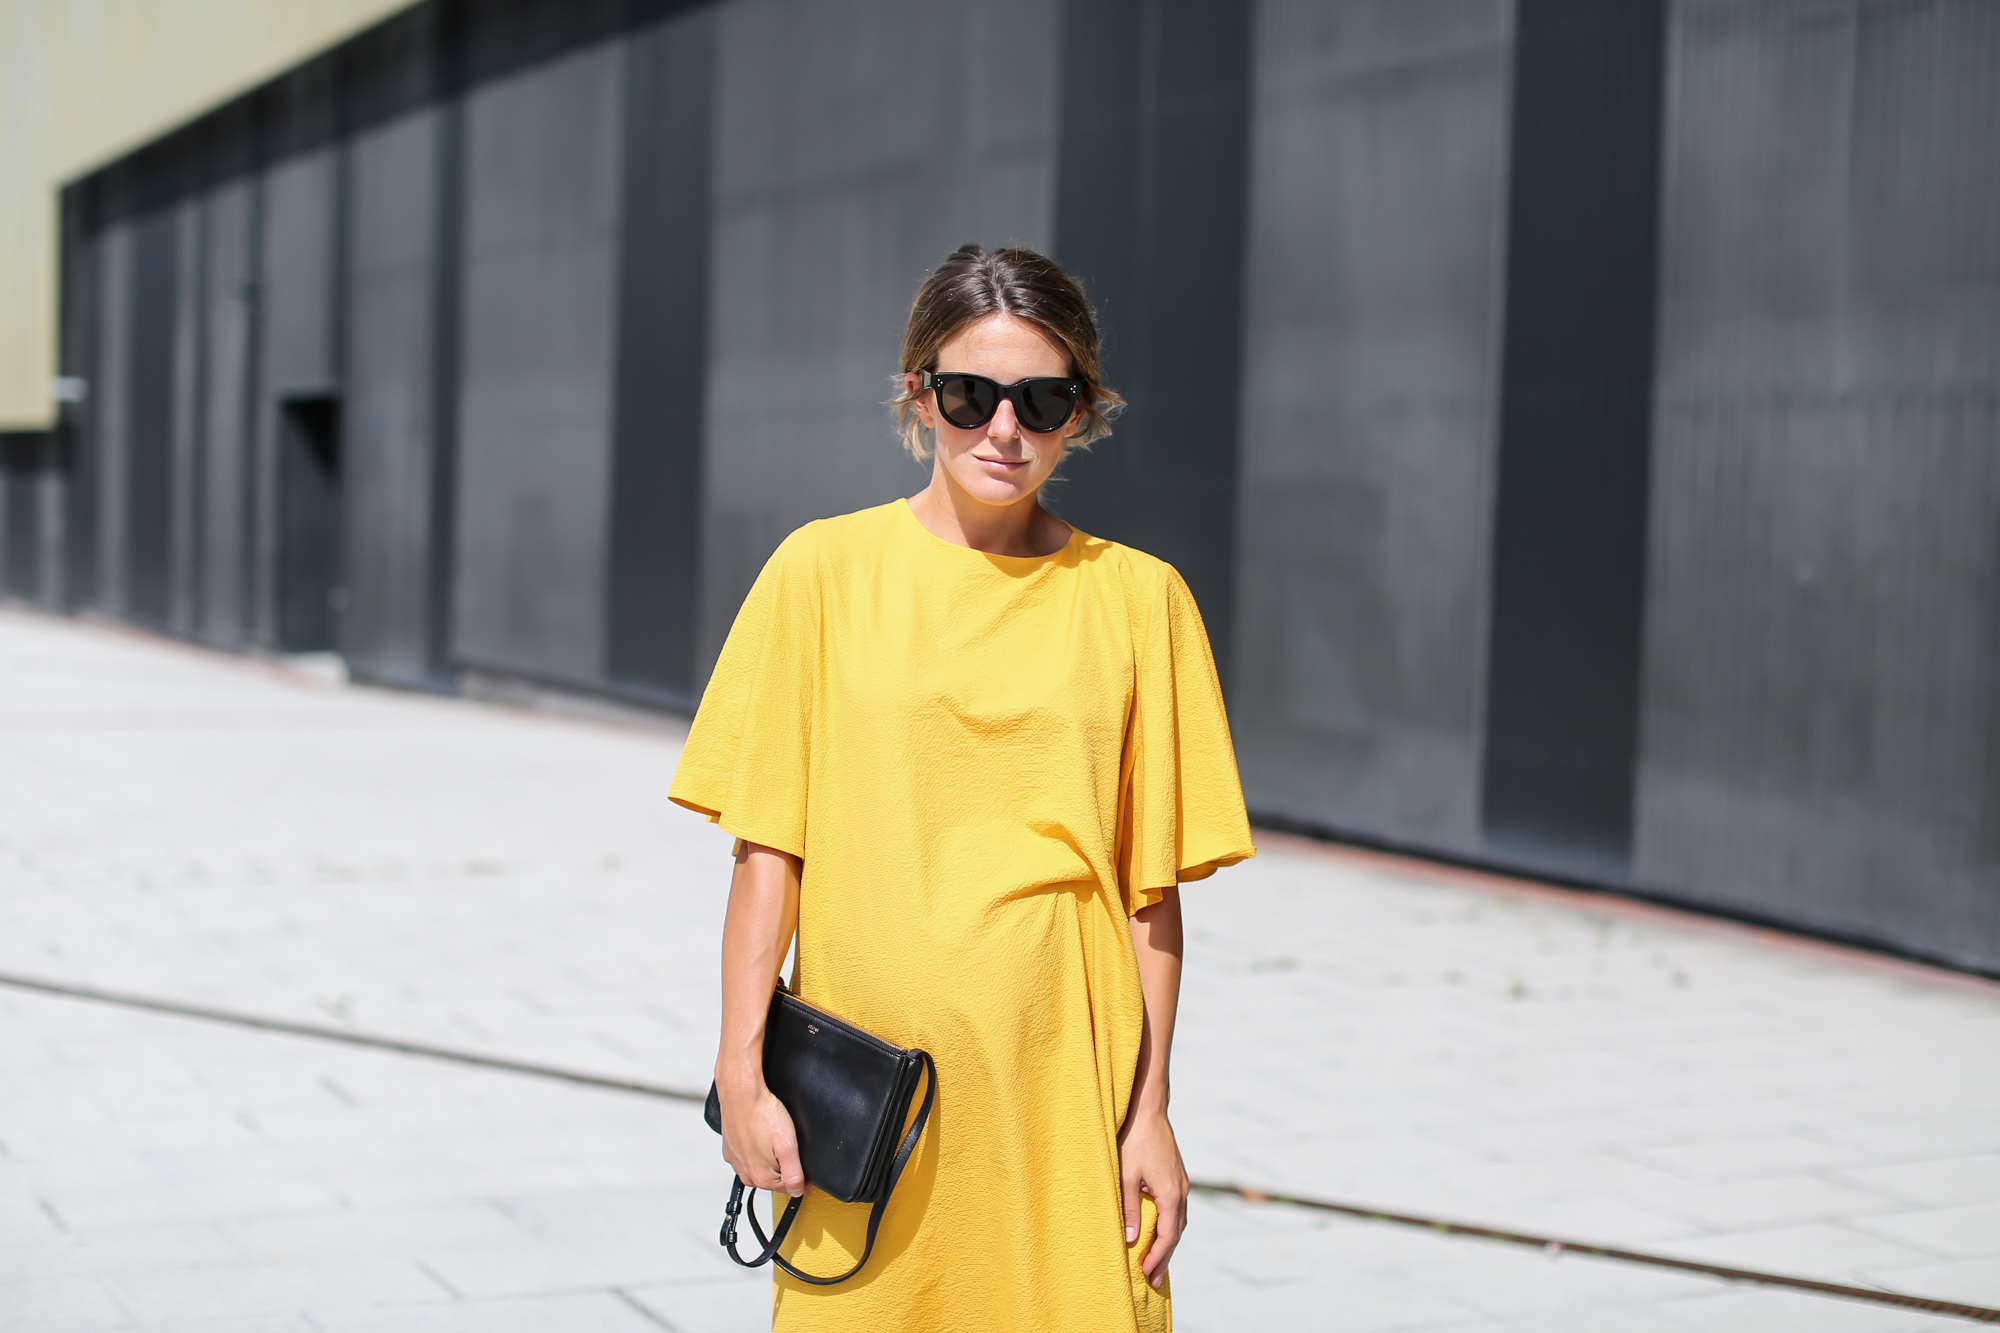 Clochet_streetstyle_fashionblogger_bilbao_zara_joinlife_yellow_minimaldress_celinetriobag-4